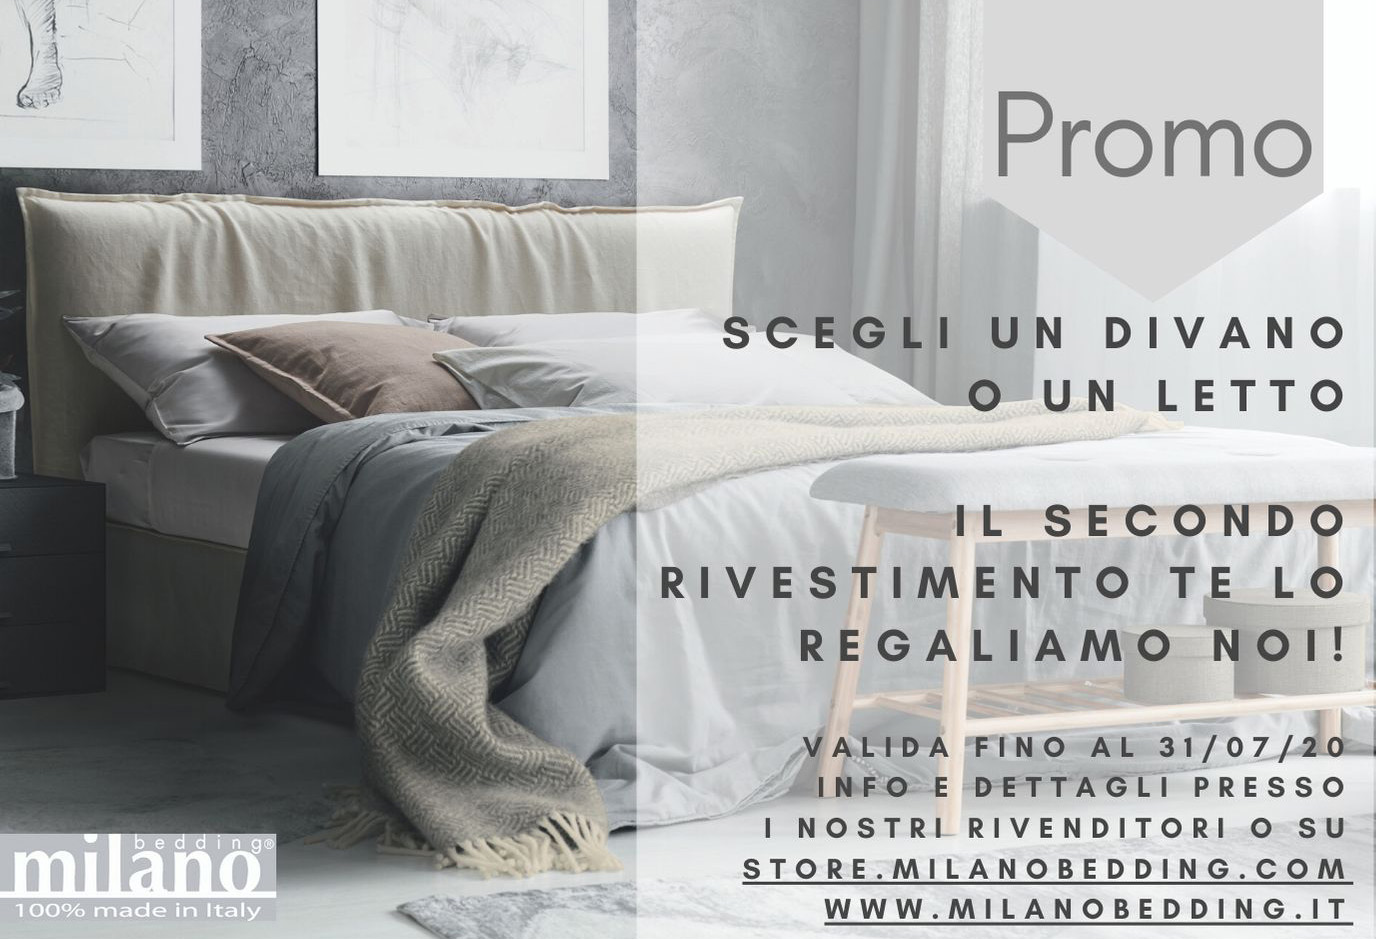 promo-MilanoBedding-2020